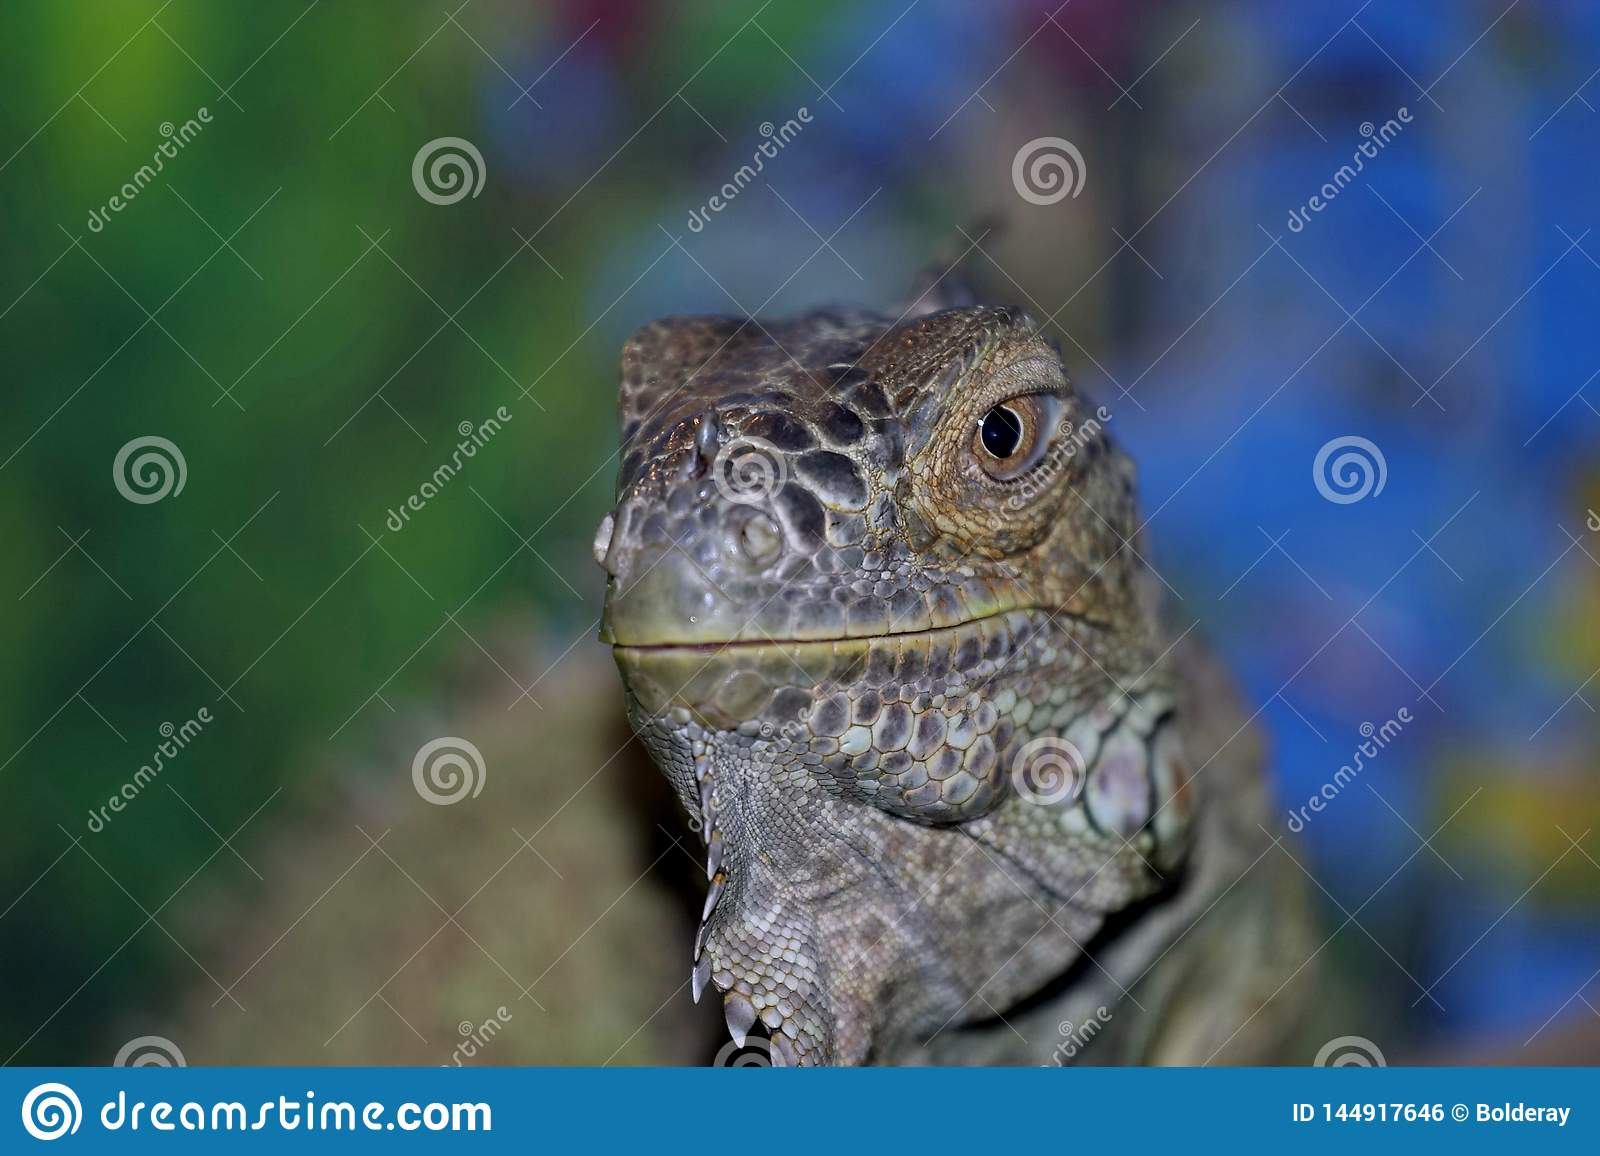 An ordinary iguana, or a green iguana is a large herbivorous lizard, leading a daily woody life. It lives in Central America